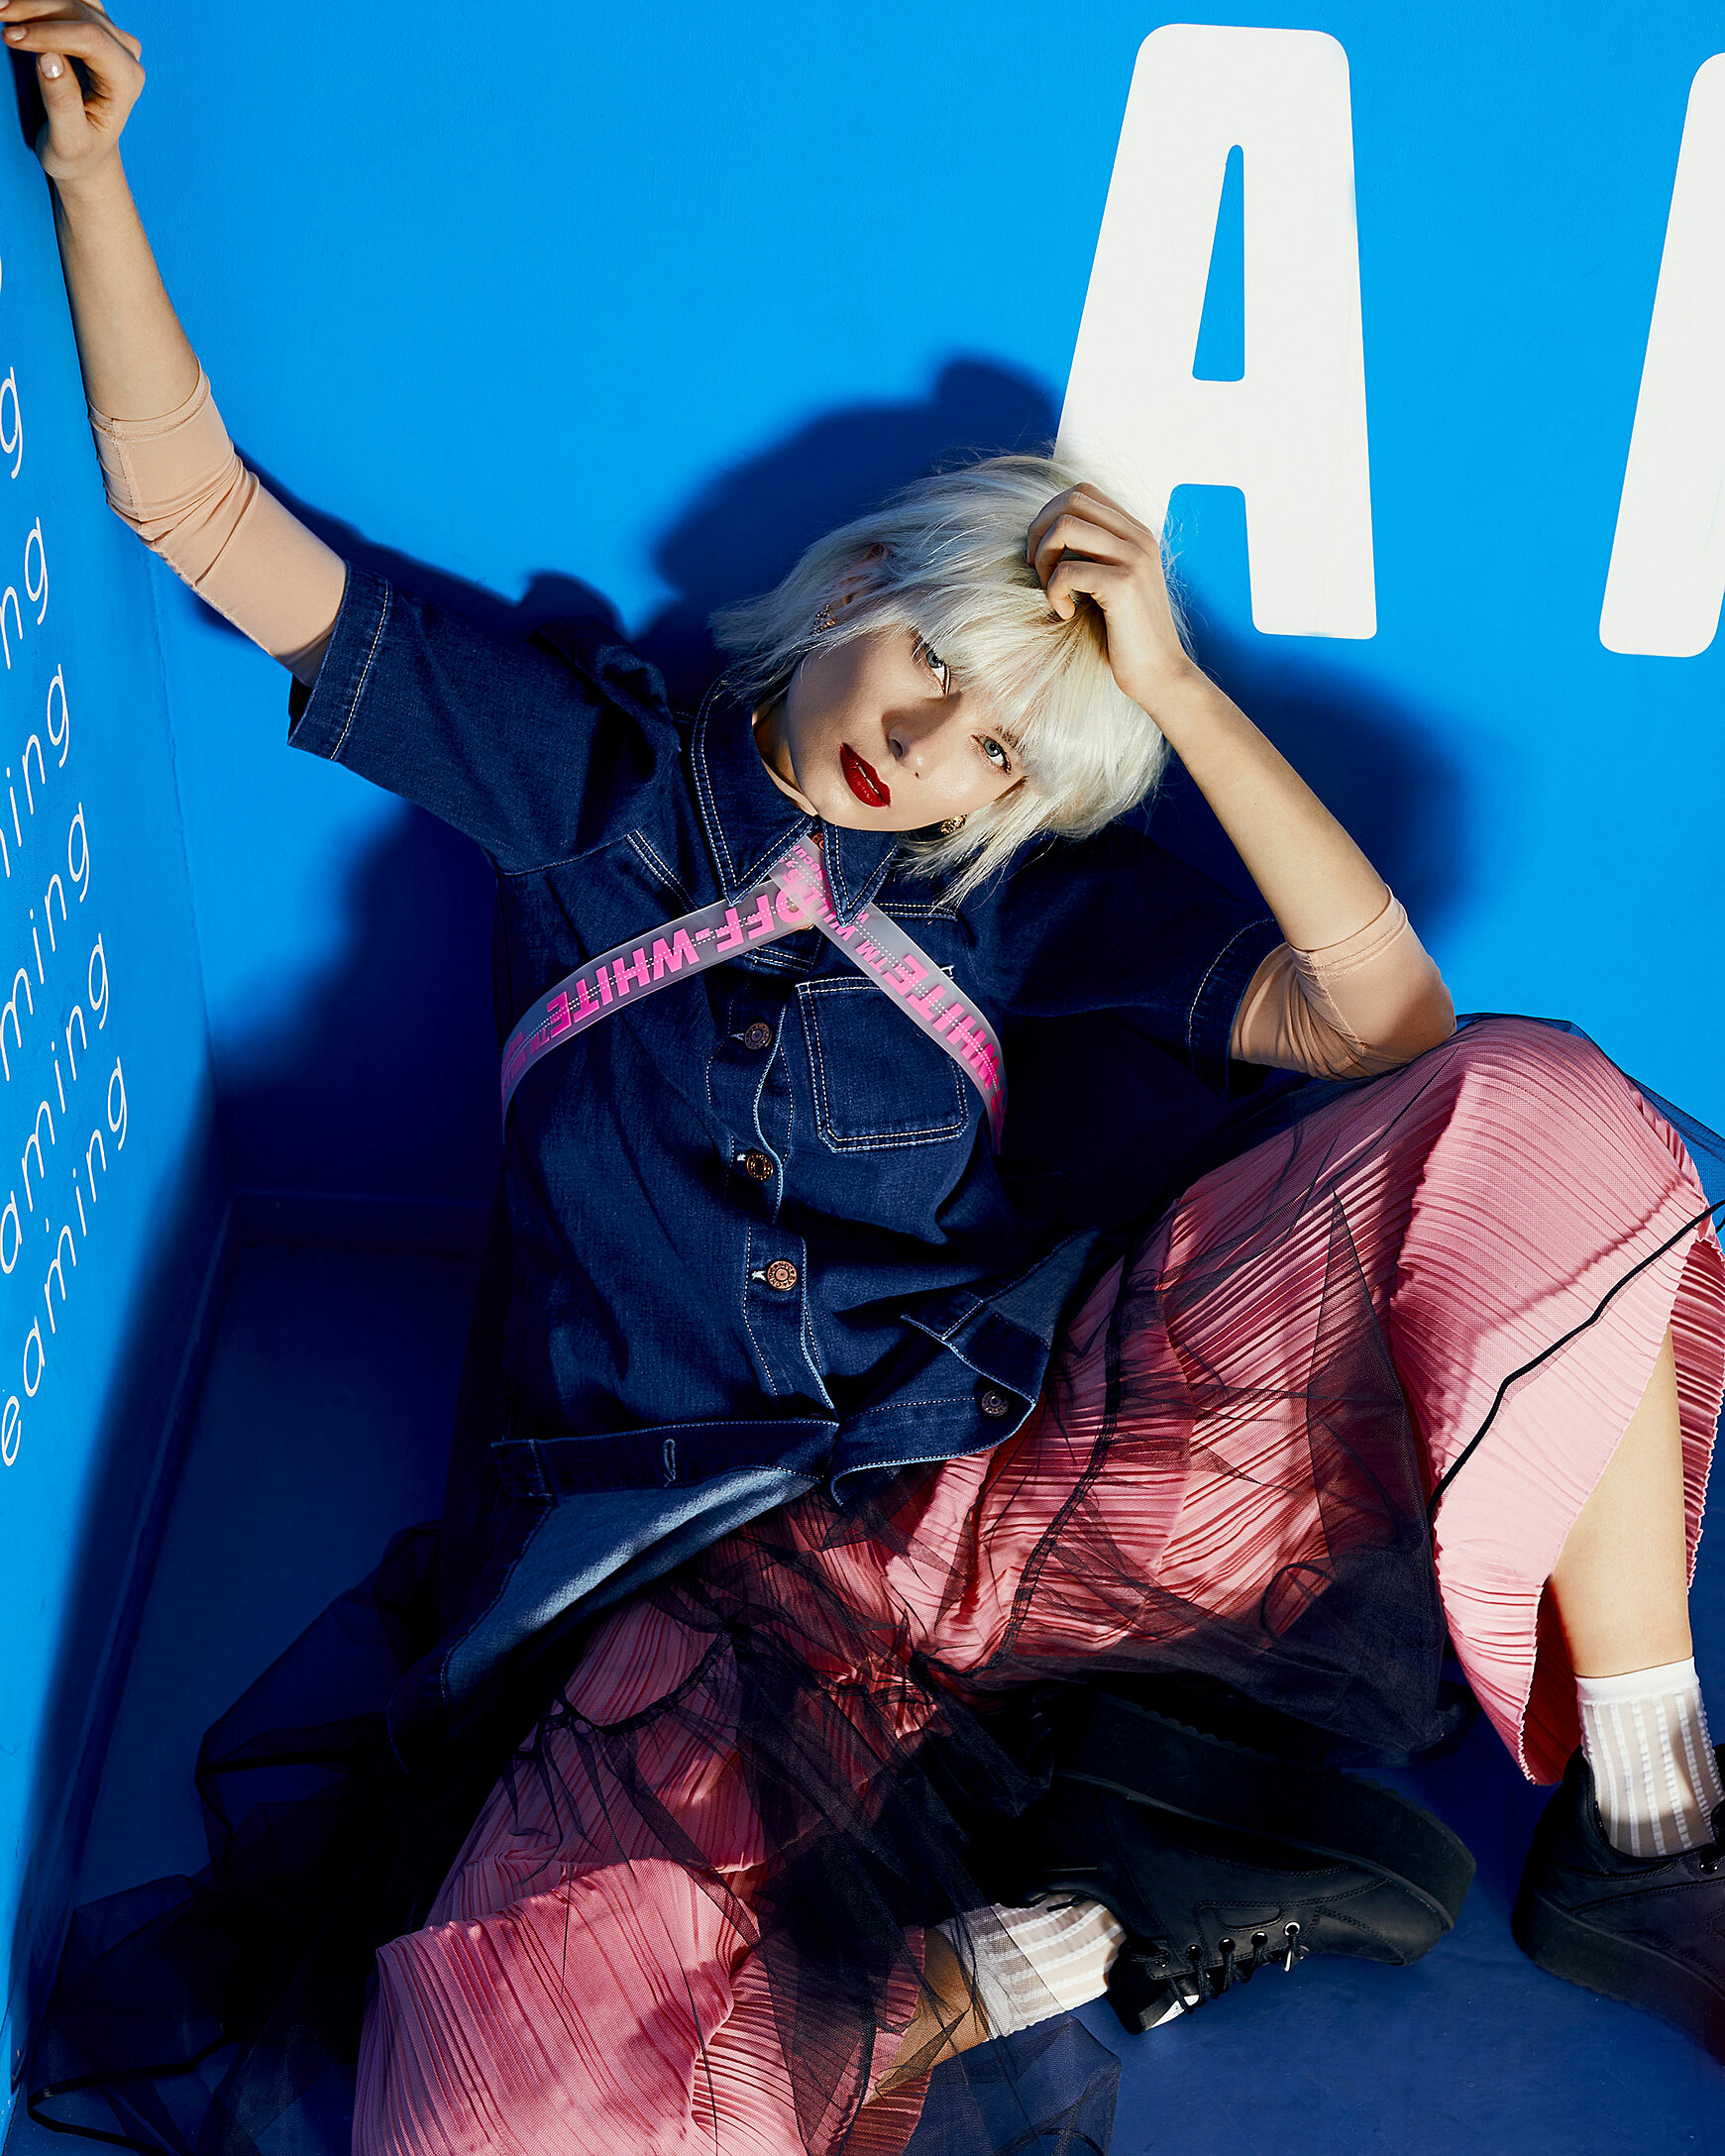 A female model with a blonde wig sits on the floor in a blue corner in pink trousers. She wears also a denim shirt and black buffalos with white socks. She lies relaxed in the corner with her back